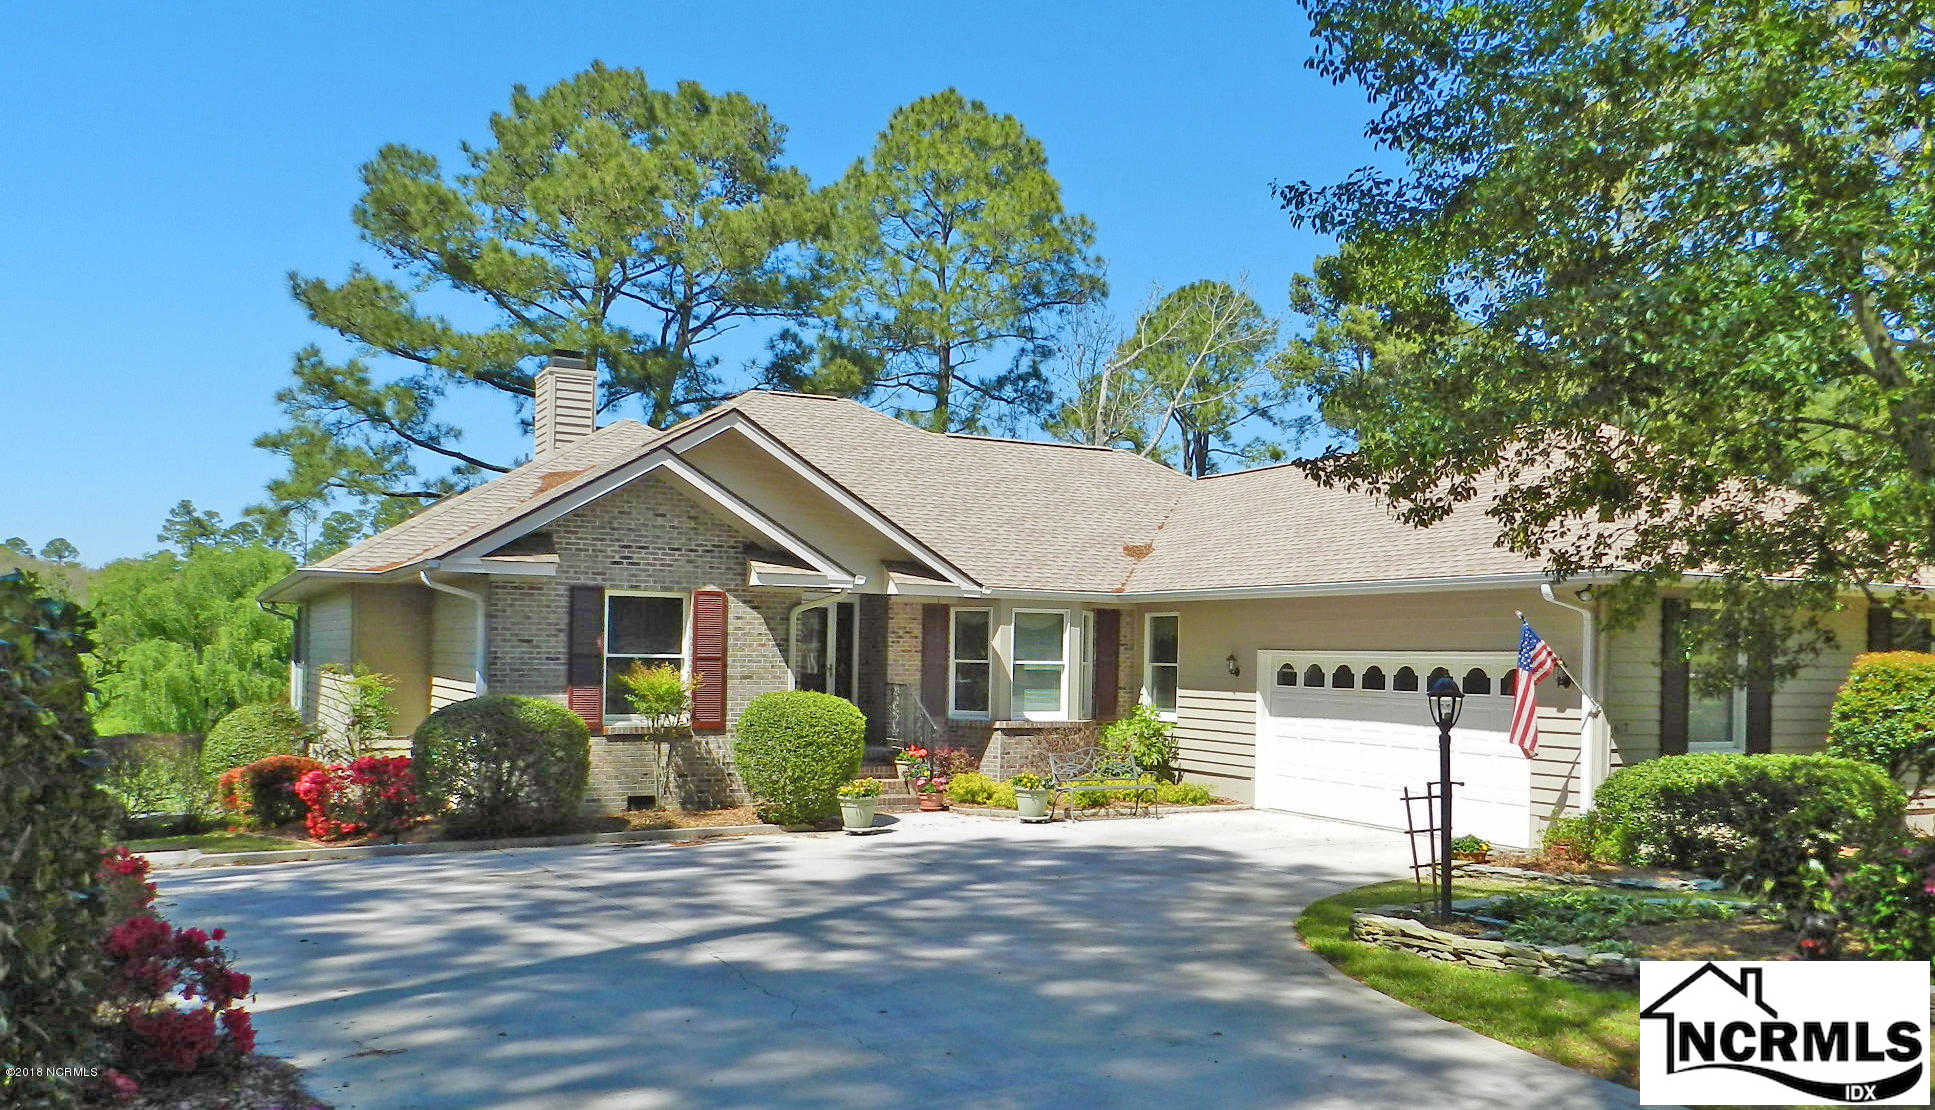 617 Kings Trail, Sunset Beach, NC 28468 now has a new price of $330,000!